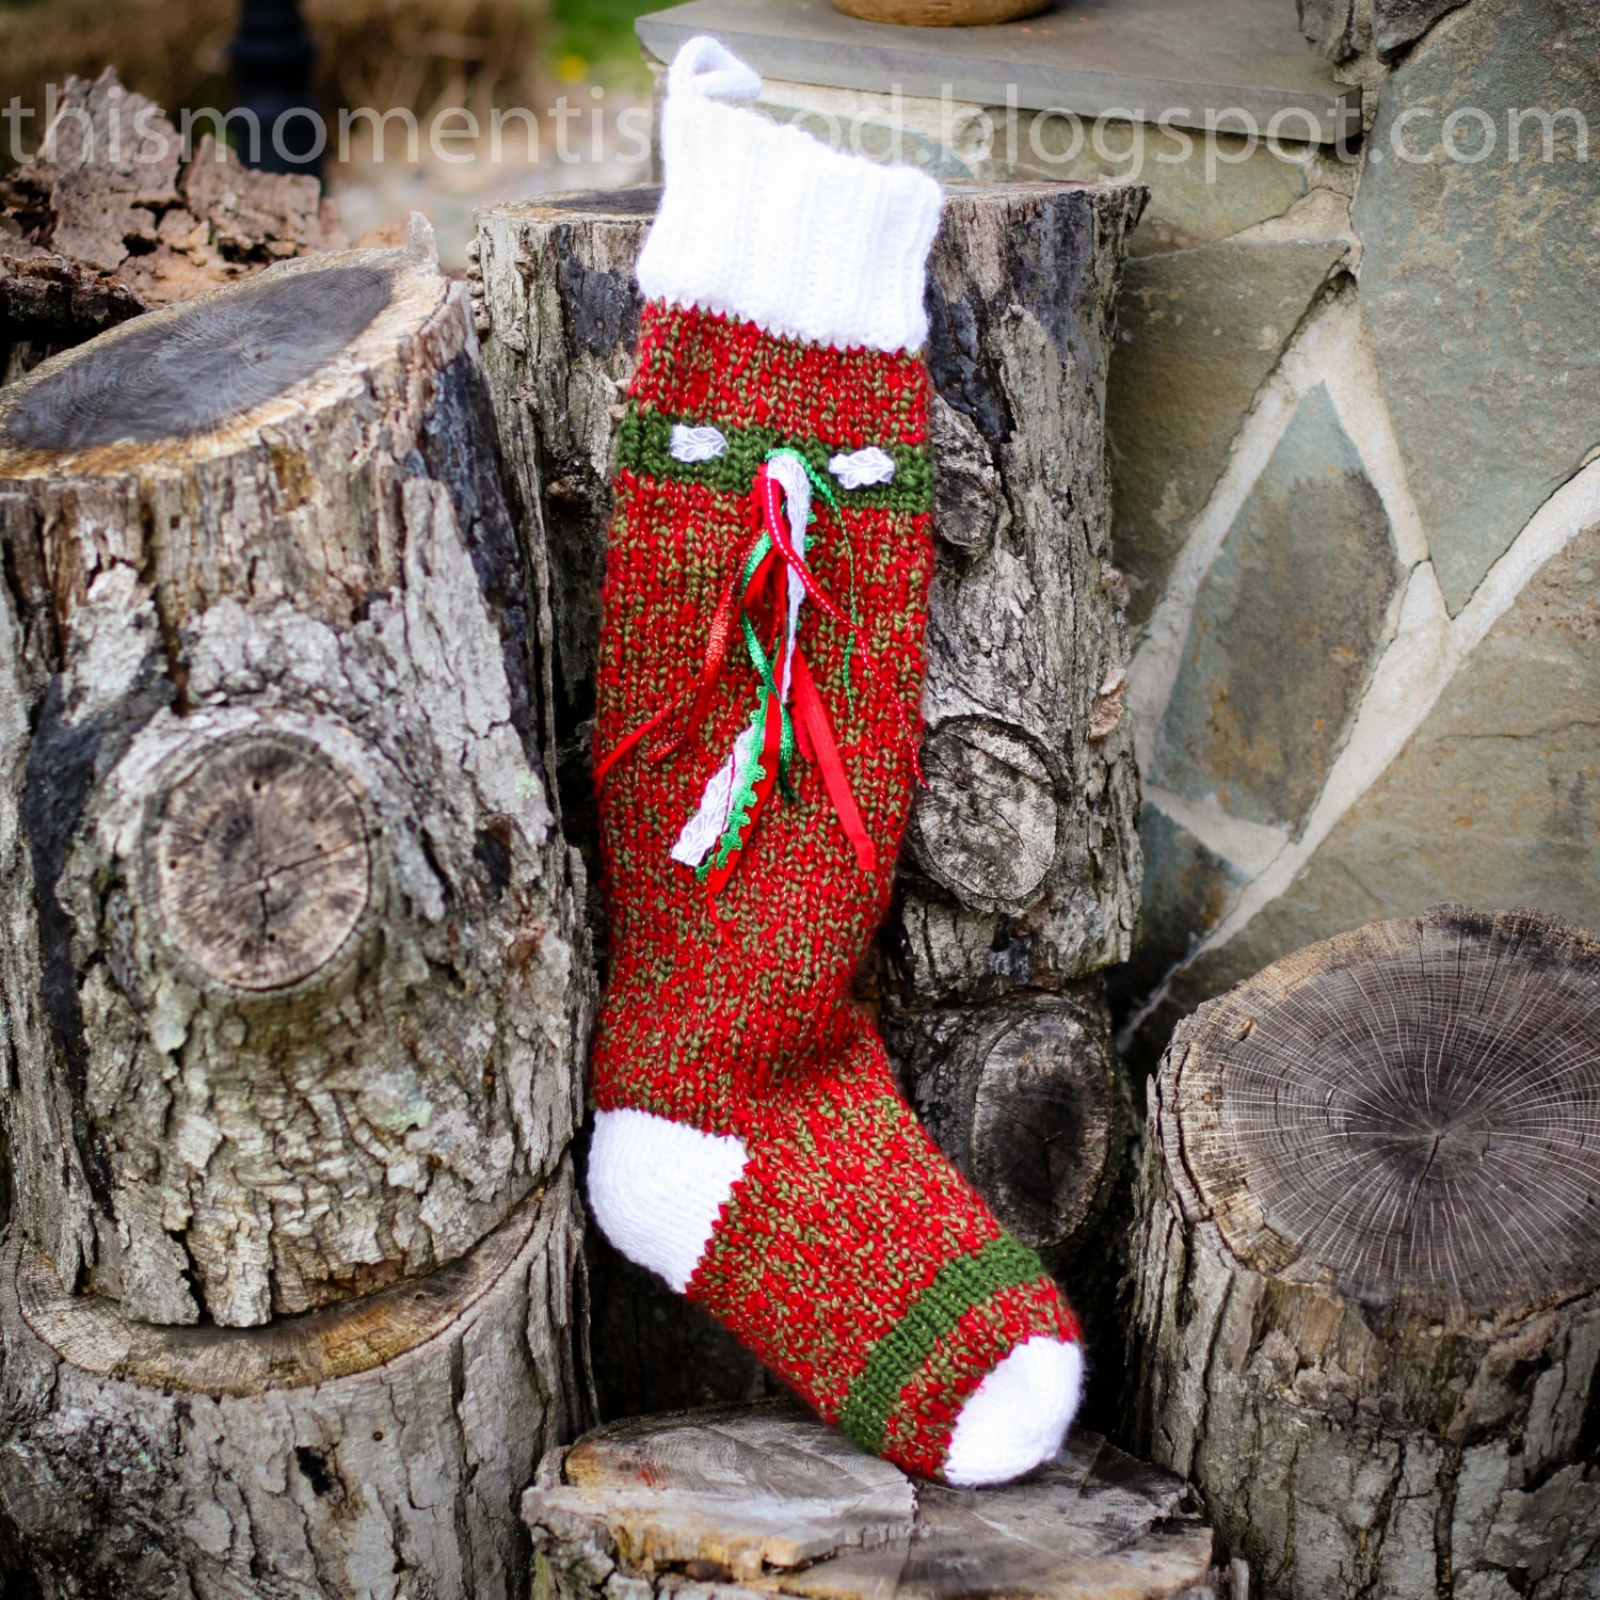 LOOM KNIT CHRISTMAS STOCKING PATTERN | This Moment is Good